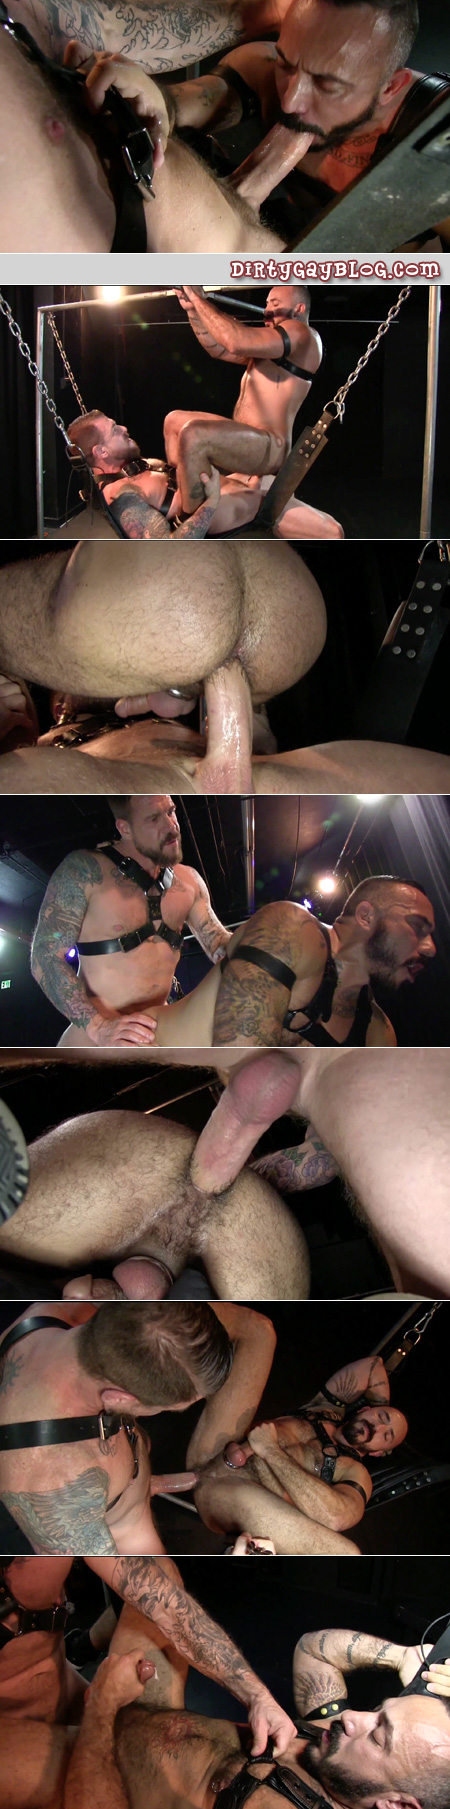 Hairy, hung leatherman fucking another beefy, furry guy with his huge penis.